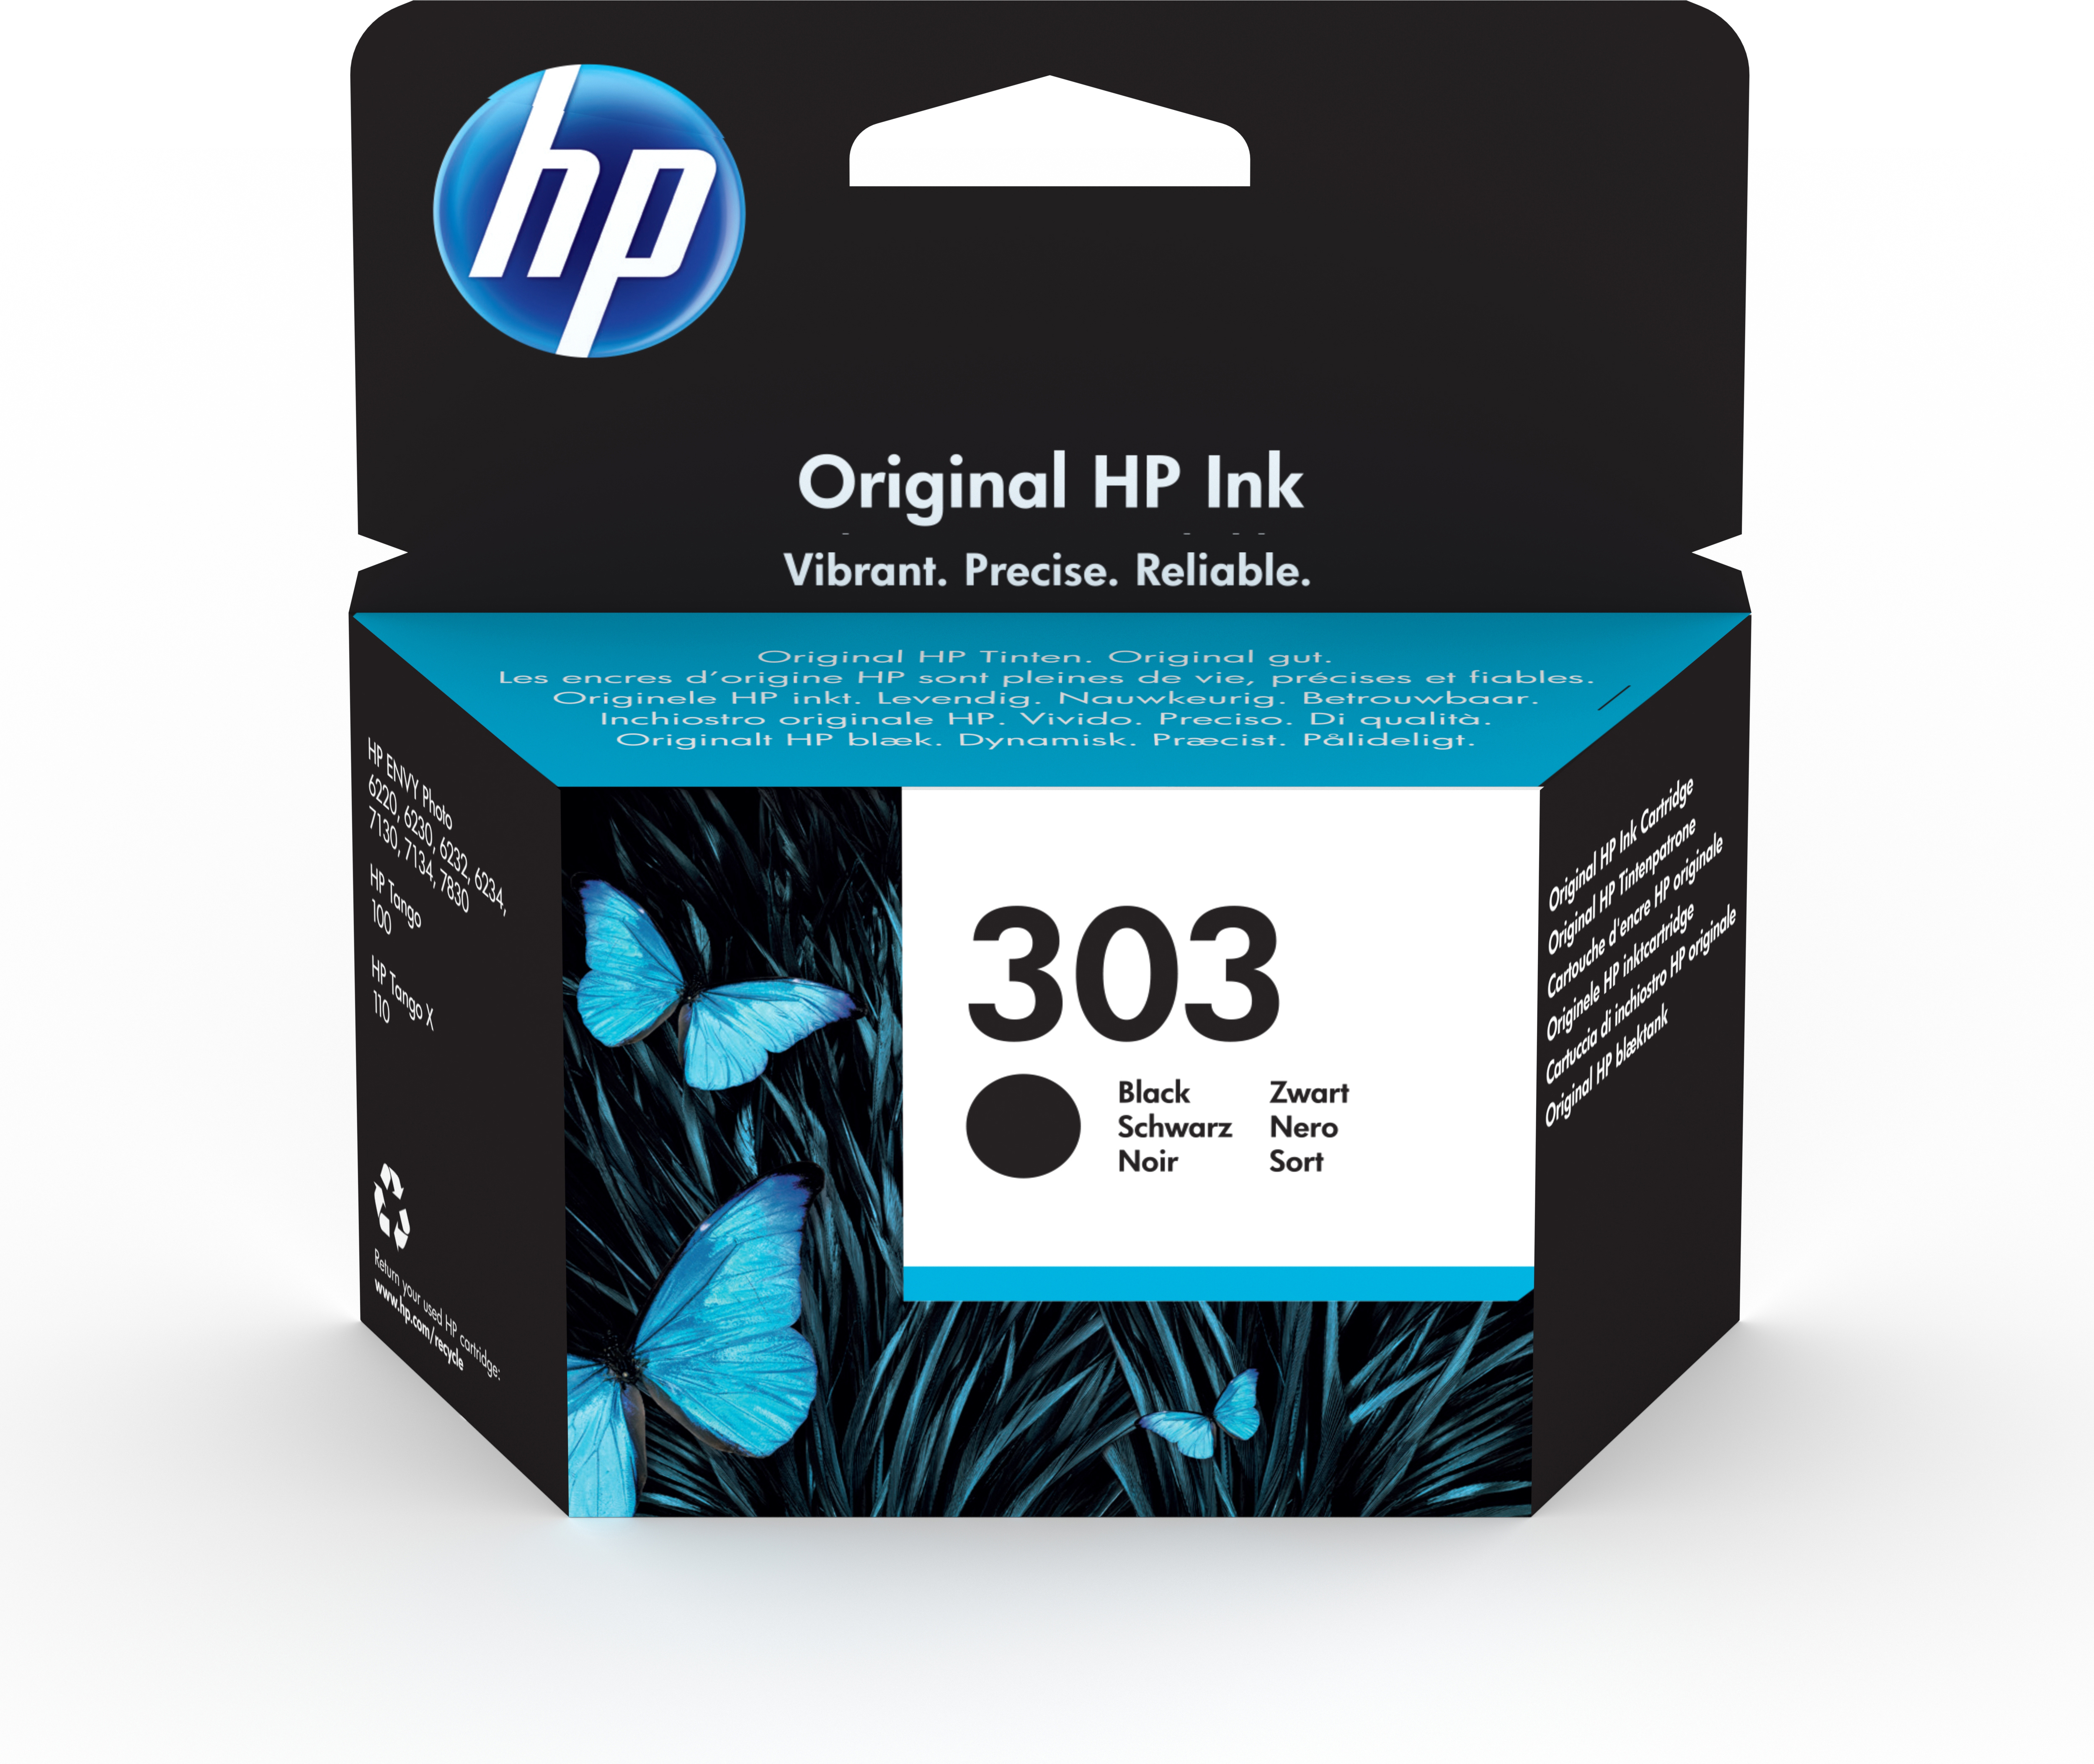 Hpt6n02ae      Hp 303 Black Ink Cartridge     Hp 303 Black Ink Cartridge                                   - UF01